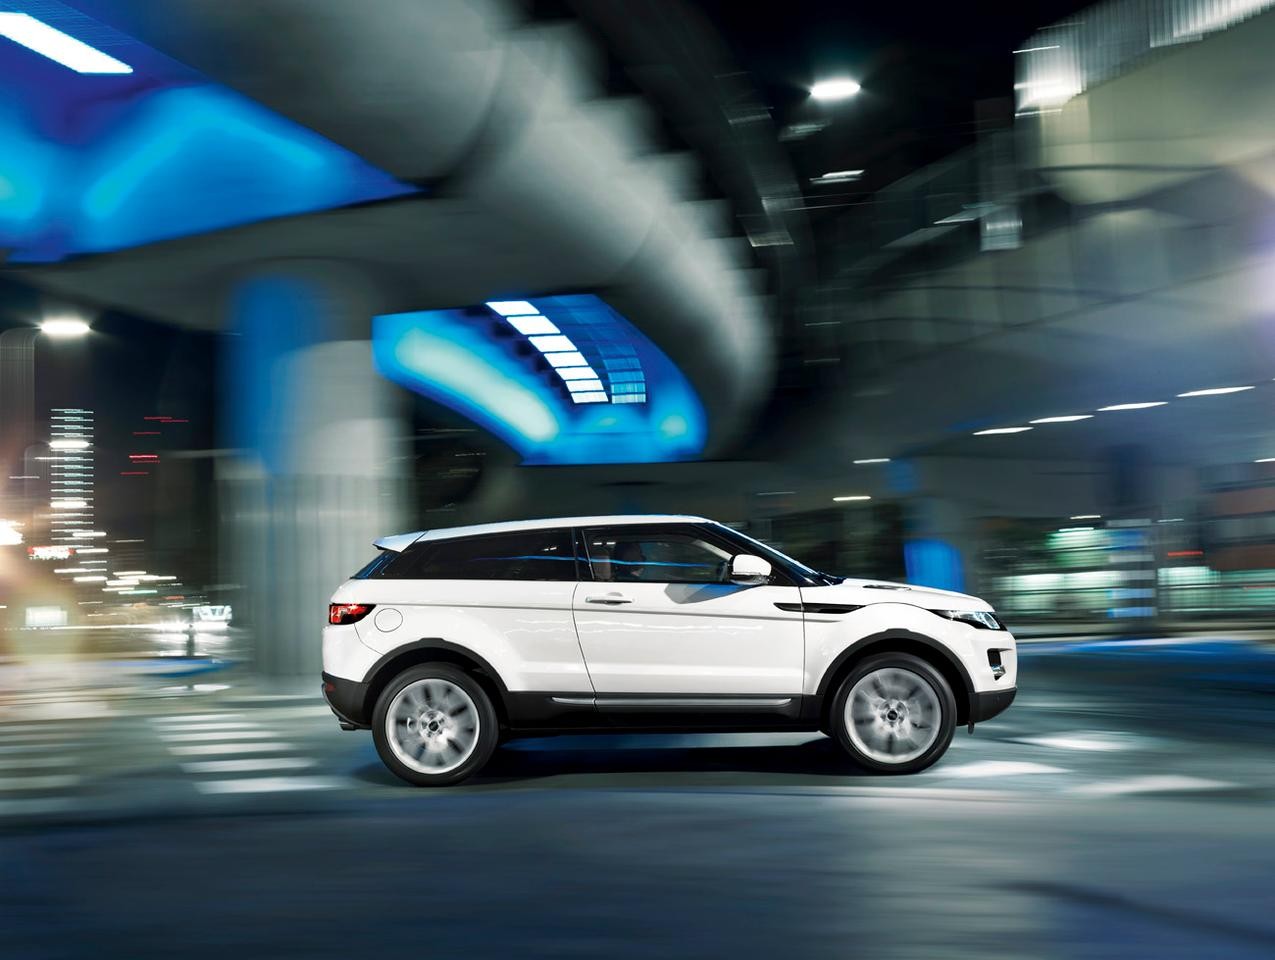 The Range Rover Evoque